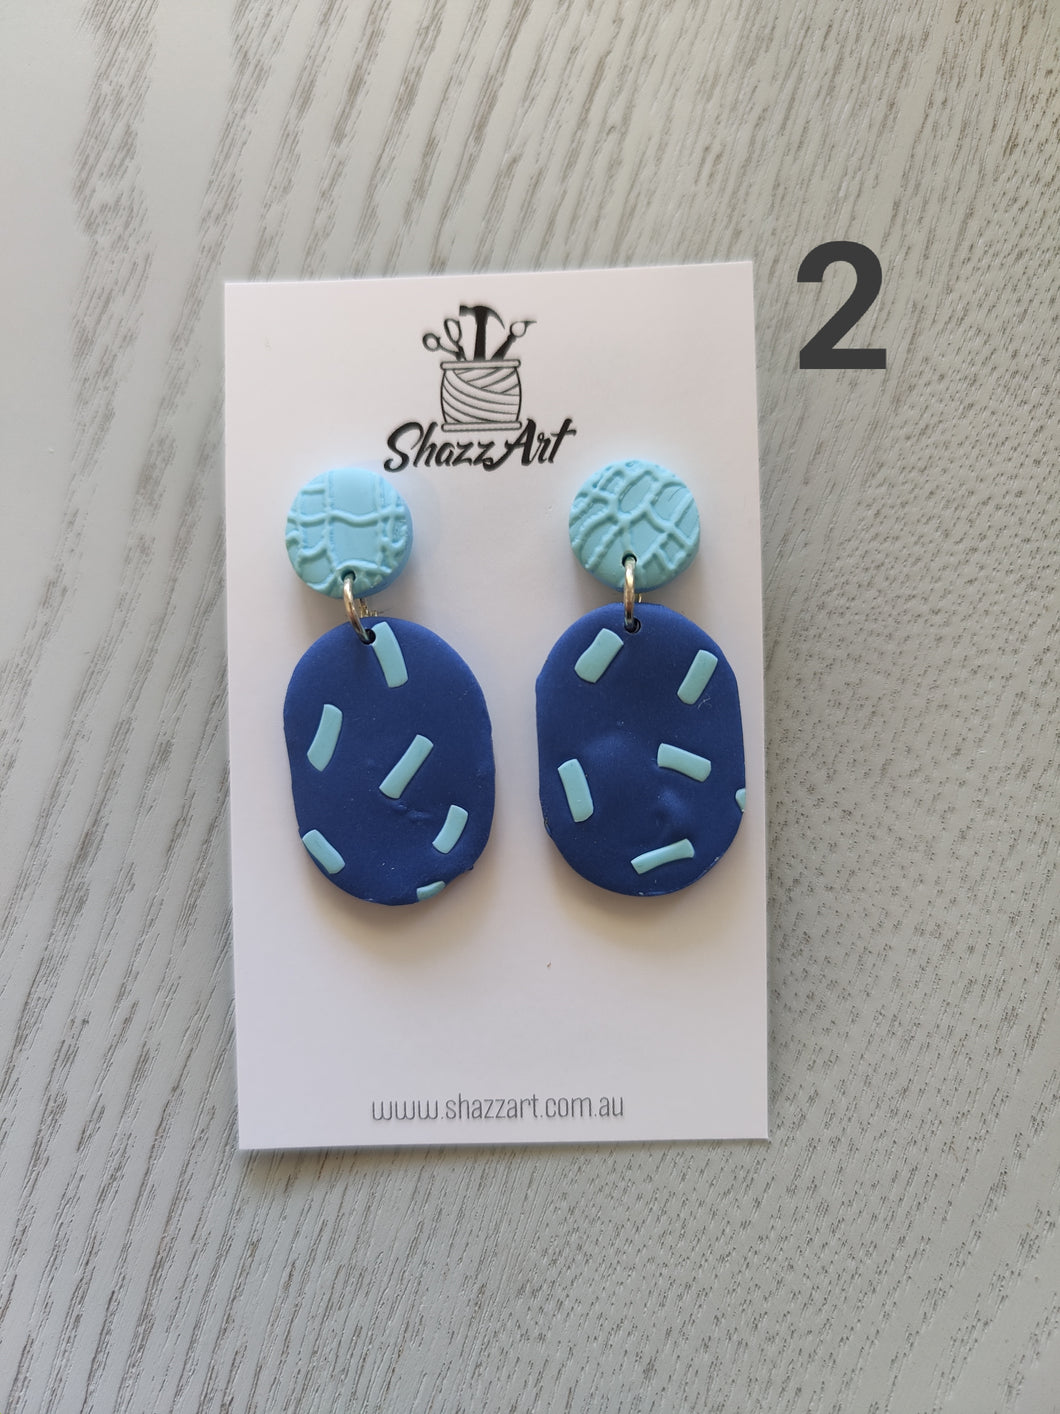 Blue Hues Earrings - Shazz Art